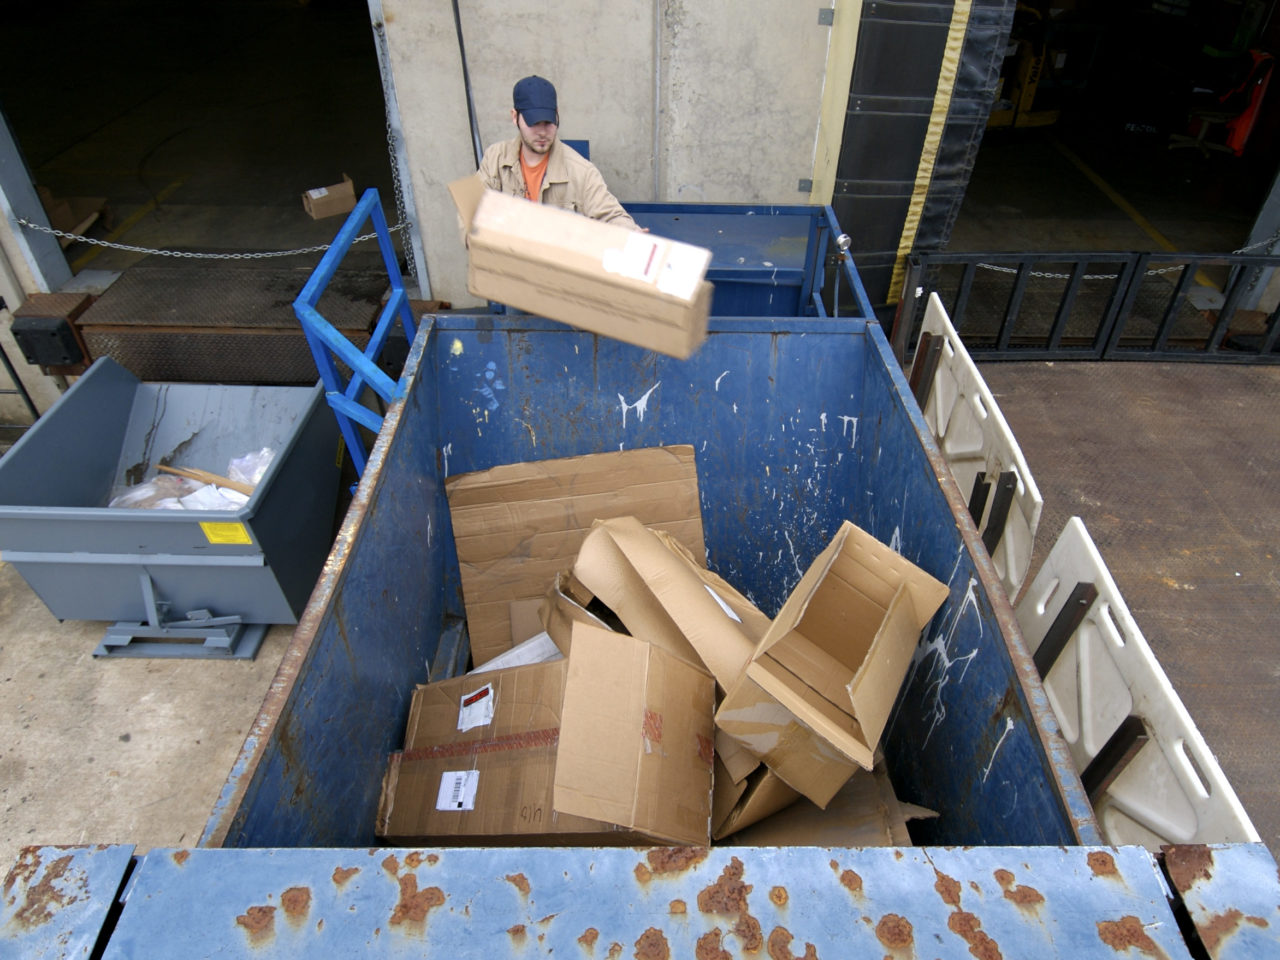 Worker throws empty cardboard boxes into an industrial trash compactor, part of the process for recycling the boxes.